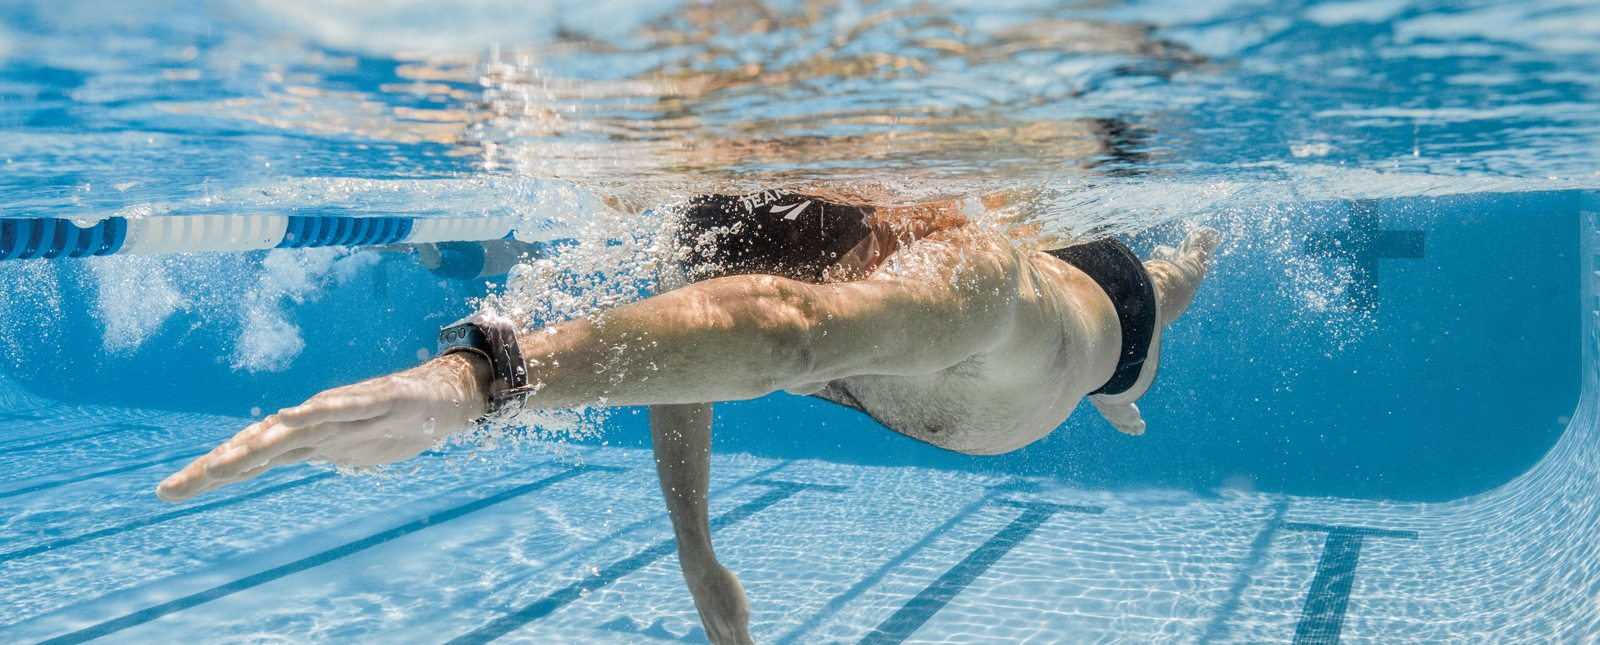 finis releases its next generation swim tracker - Finis releases its next generation swim tracker